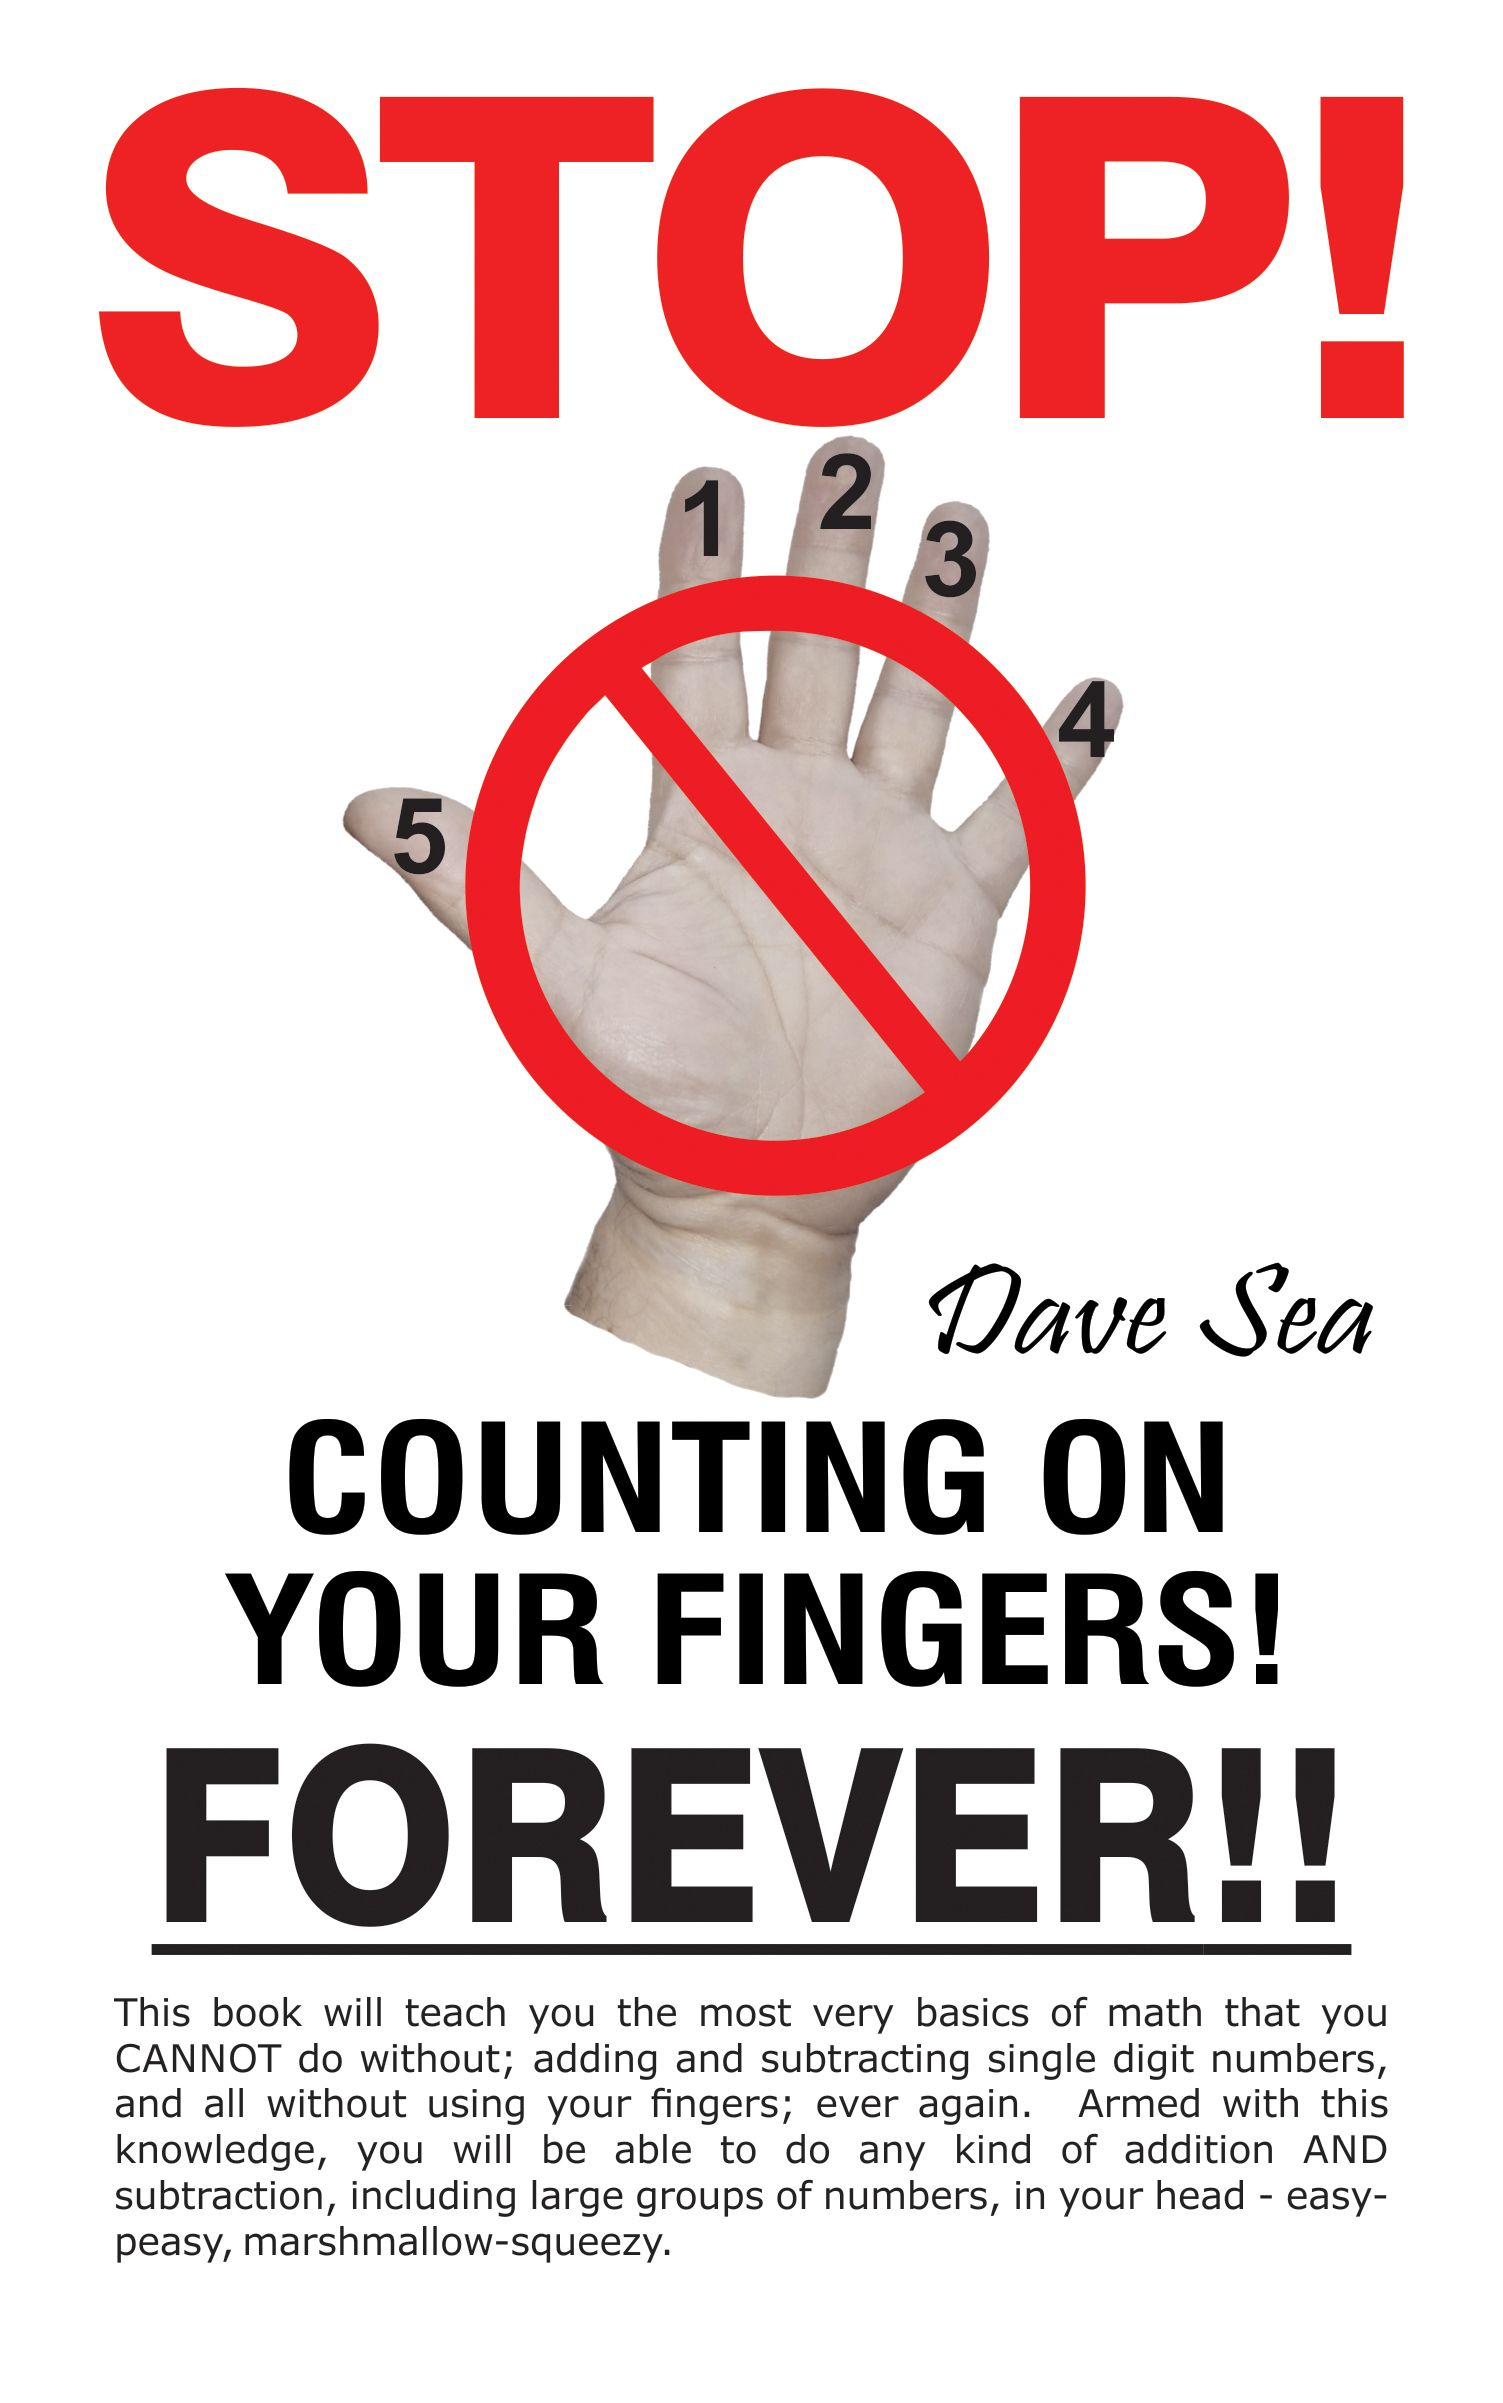 Stop Counting On Your Fingers Forever By Dave Sea Kindle Reading Books Count On You Adding large numbers in your head